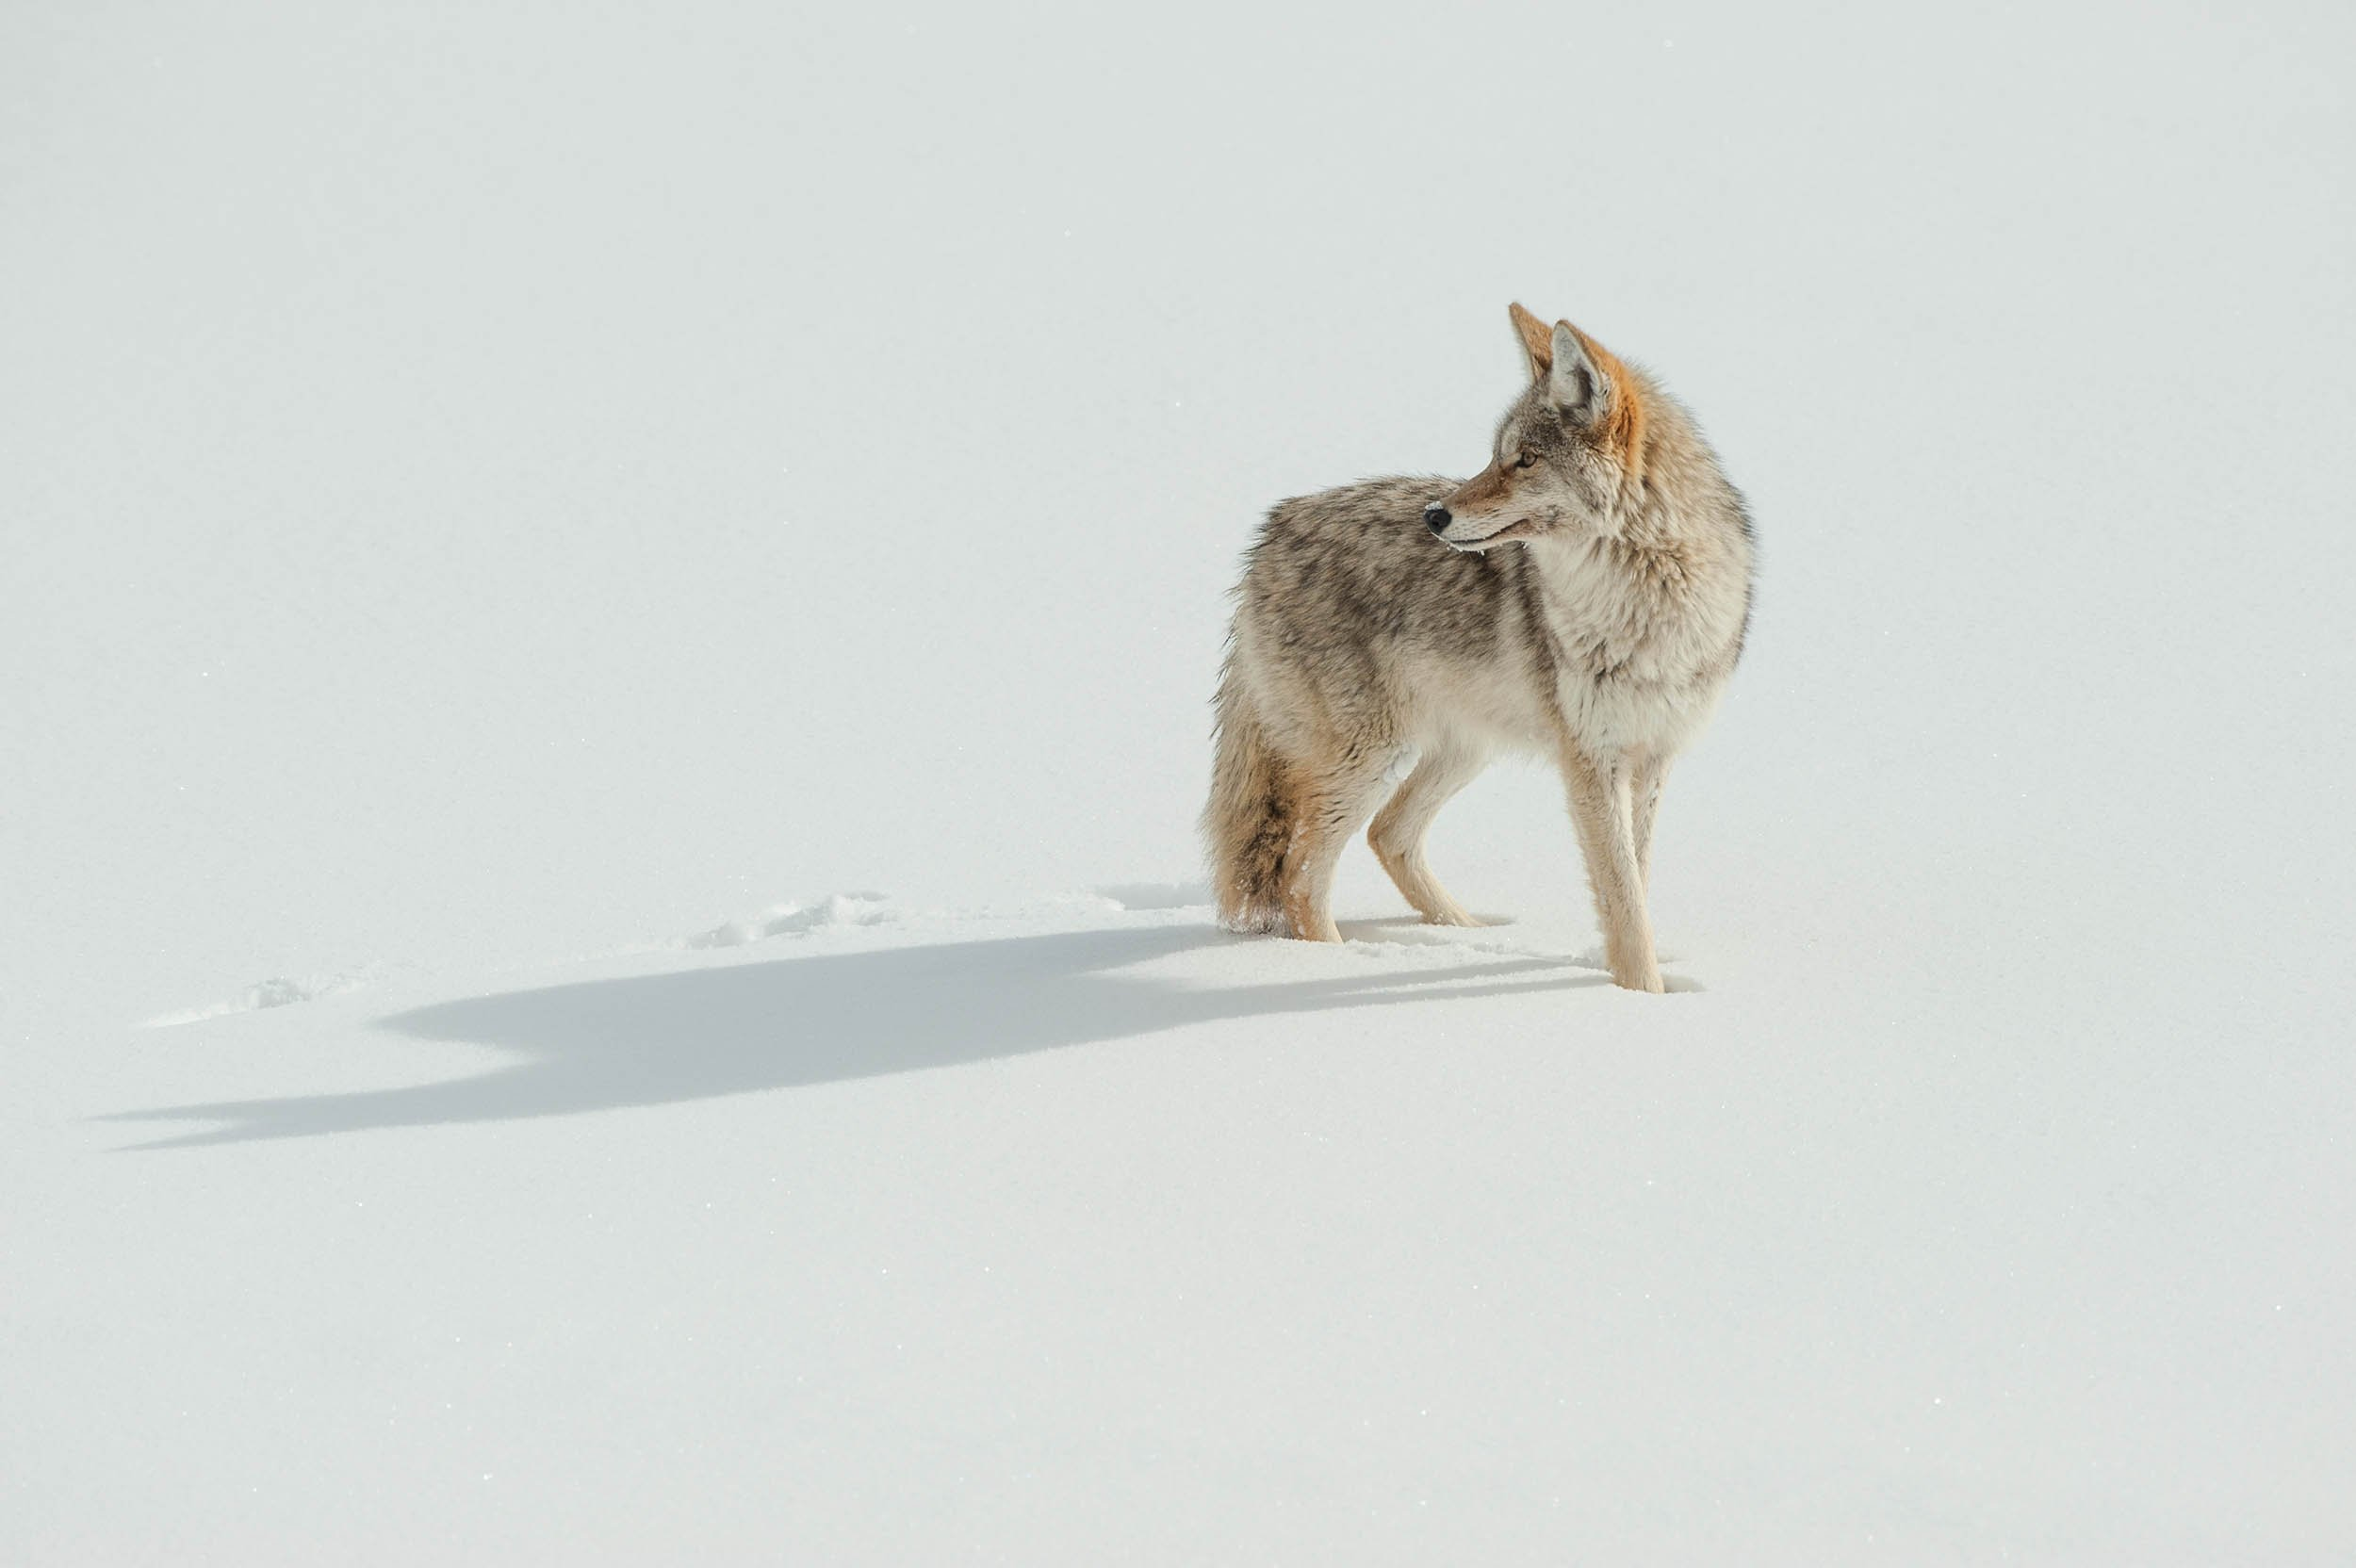 05_01_Coyotes_01